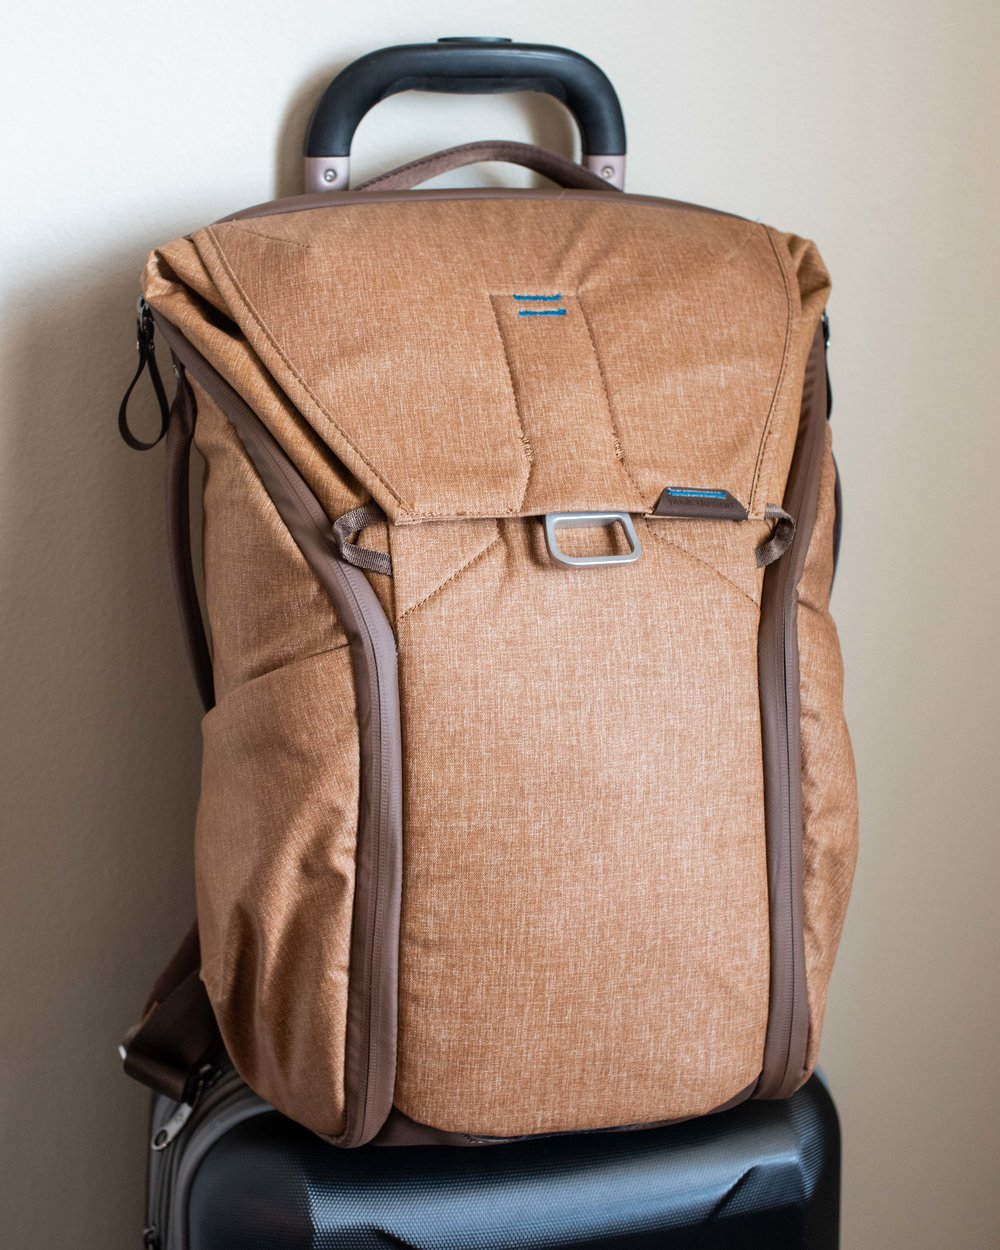 The Peak Designs 20L Everyday Backpack.